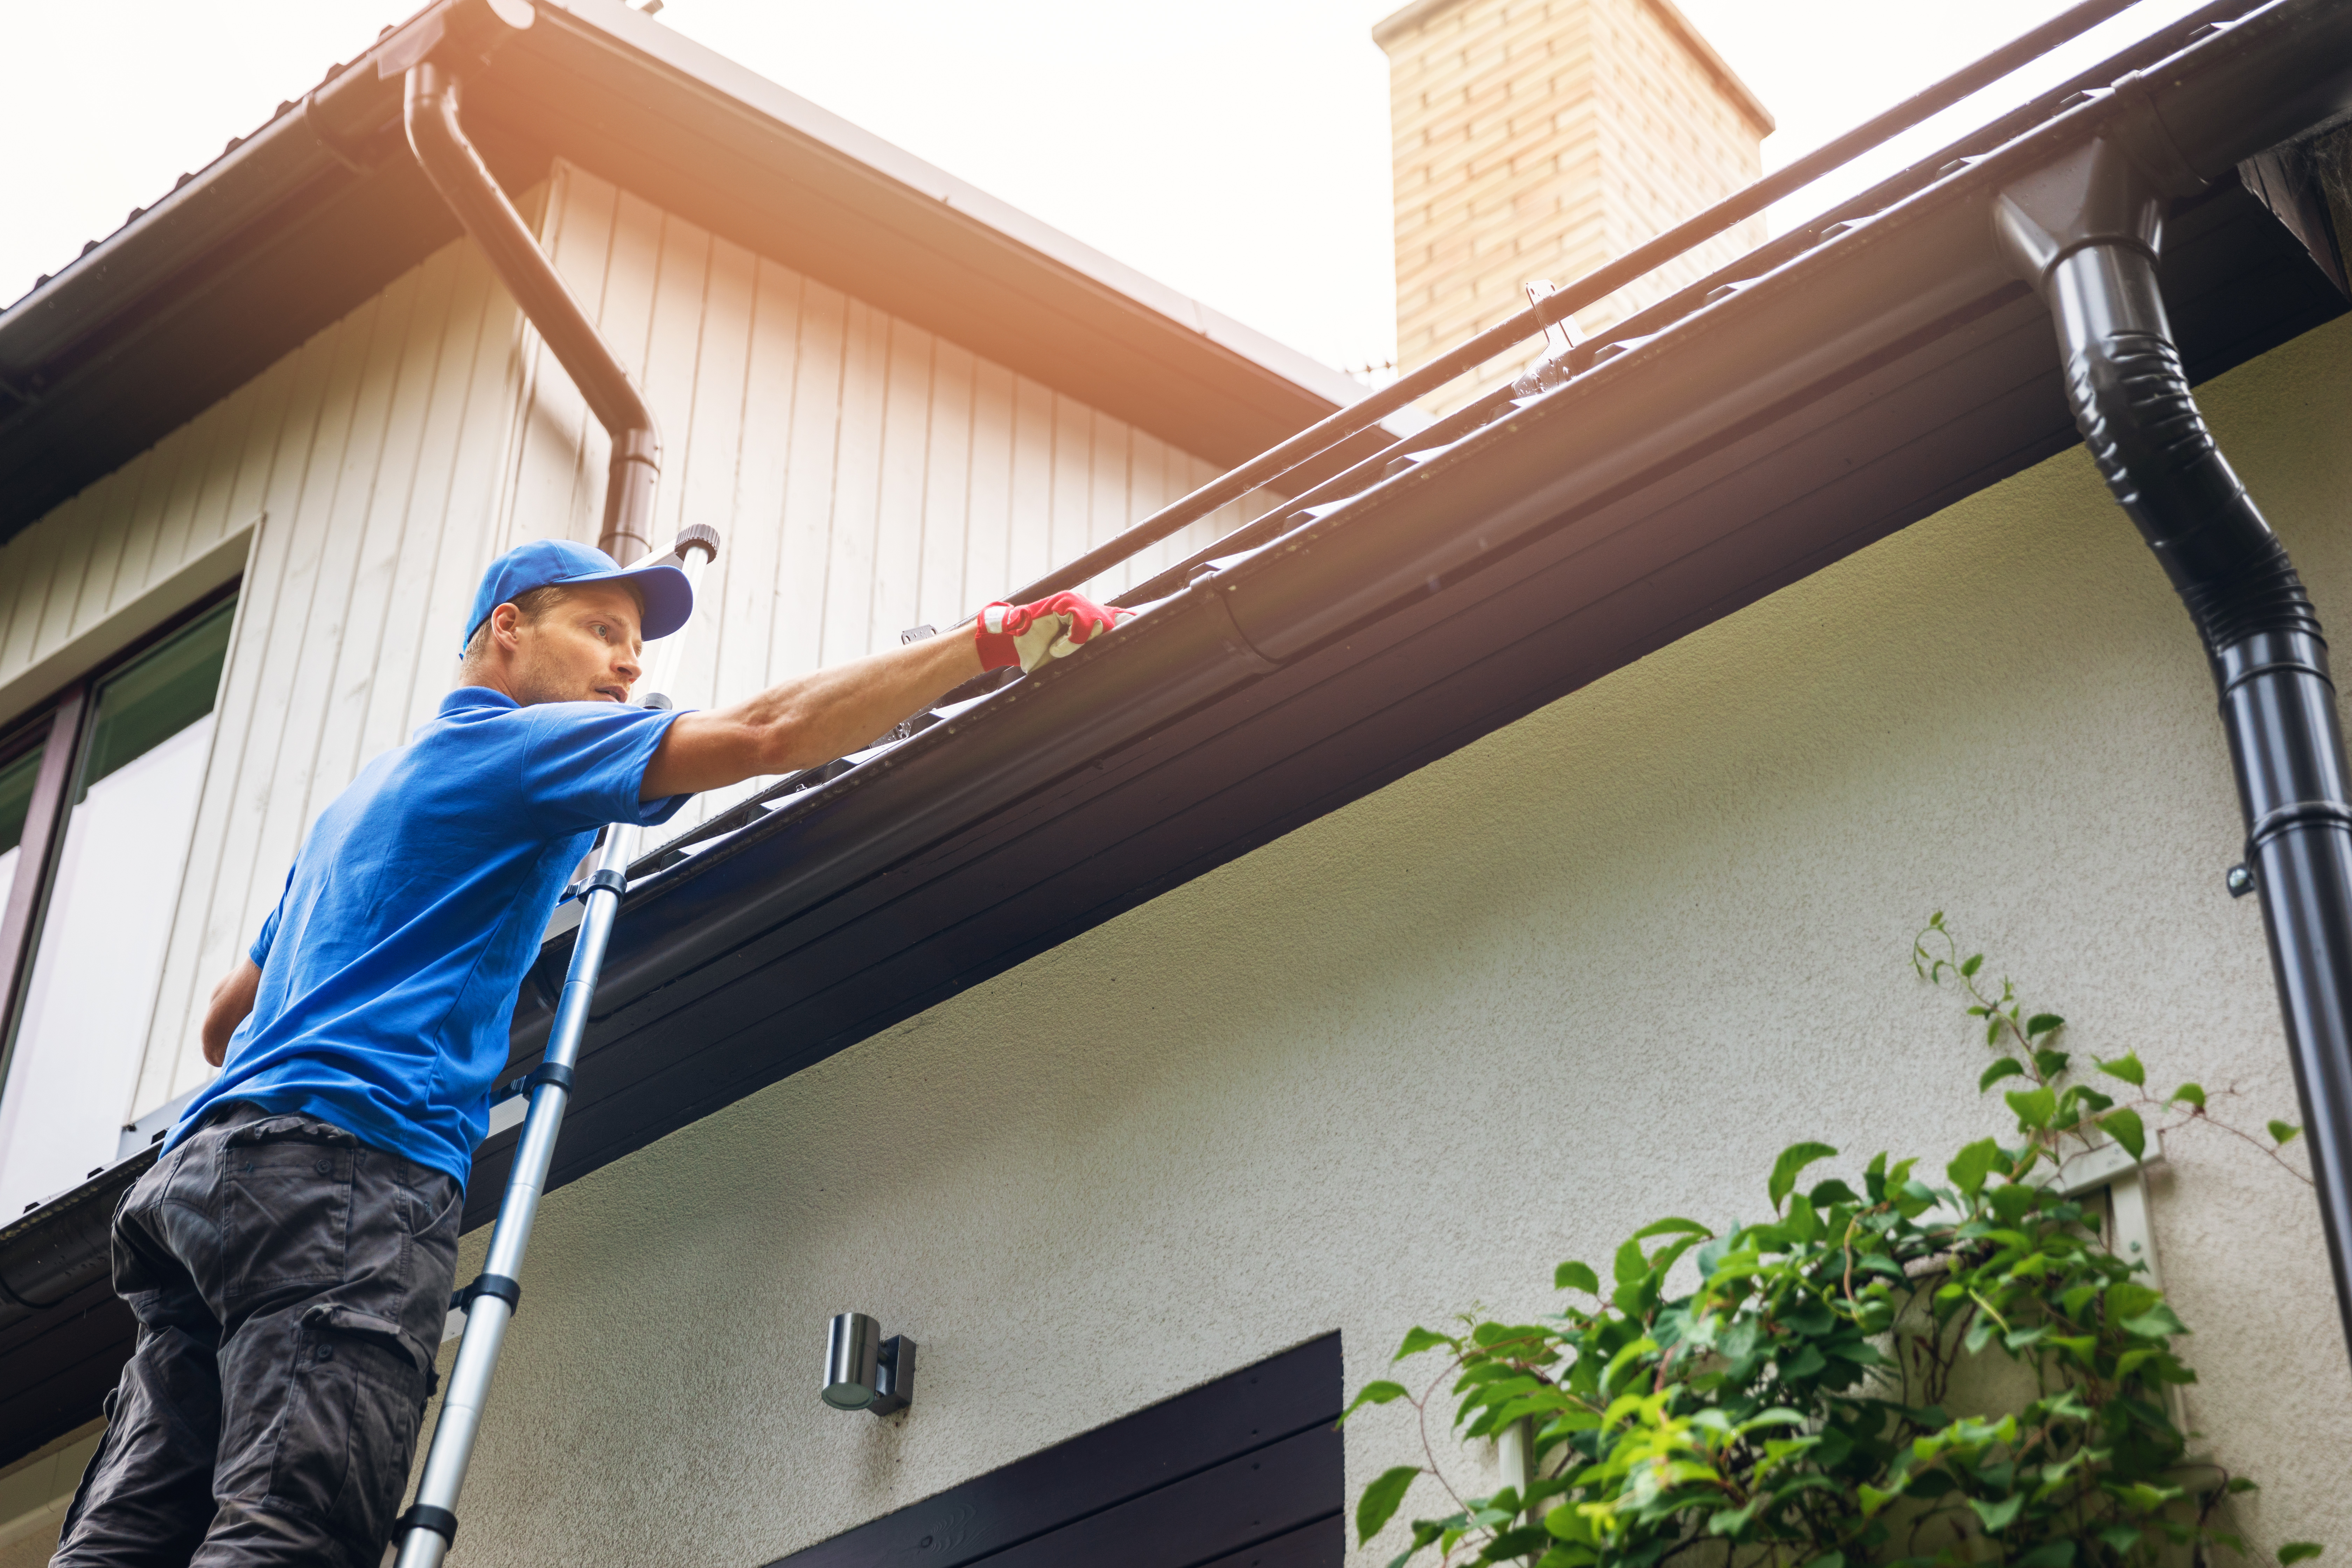 Handyman services often cover exterior tasks like gutter cleaning.